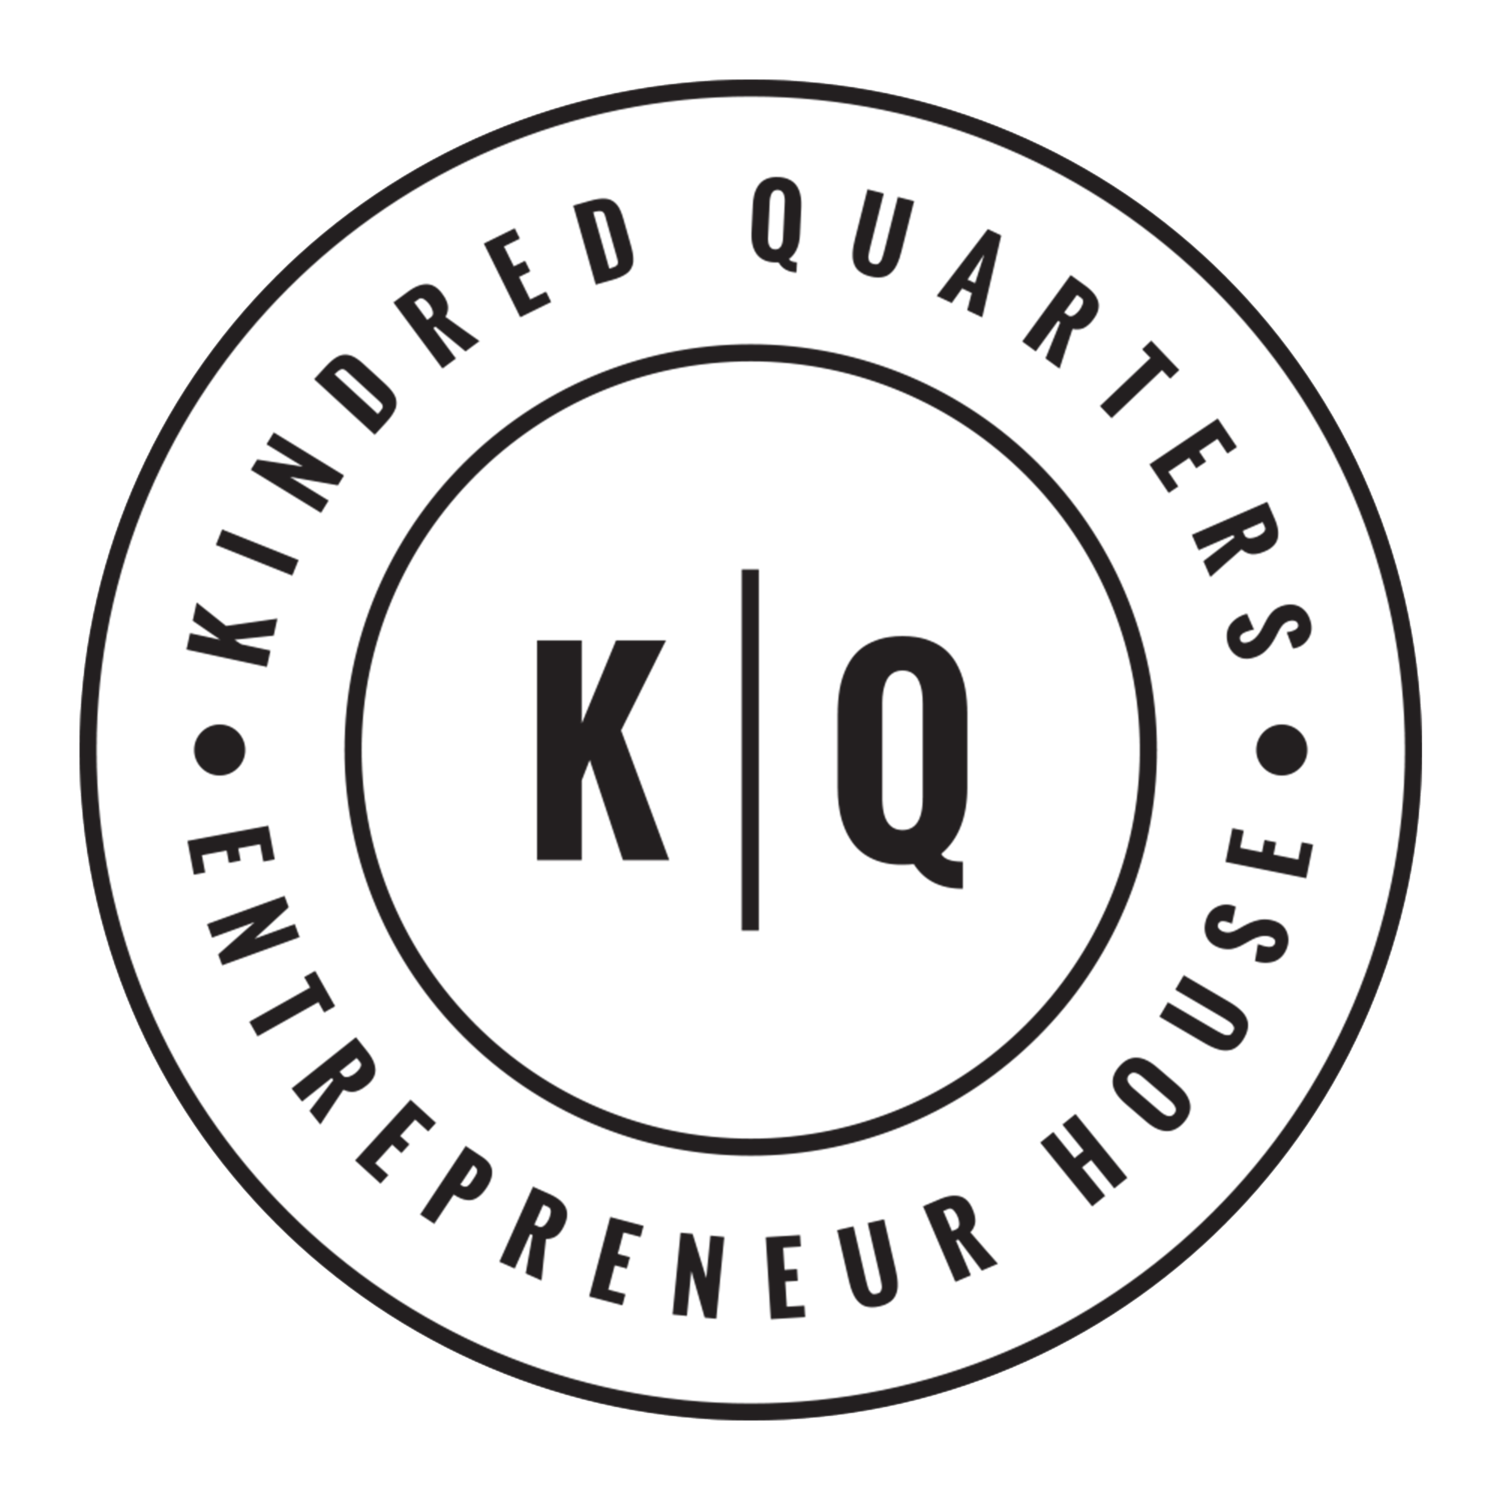 Kindred Quarters